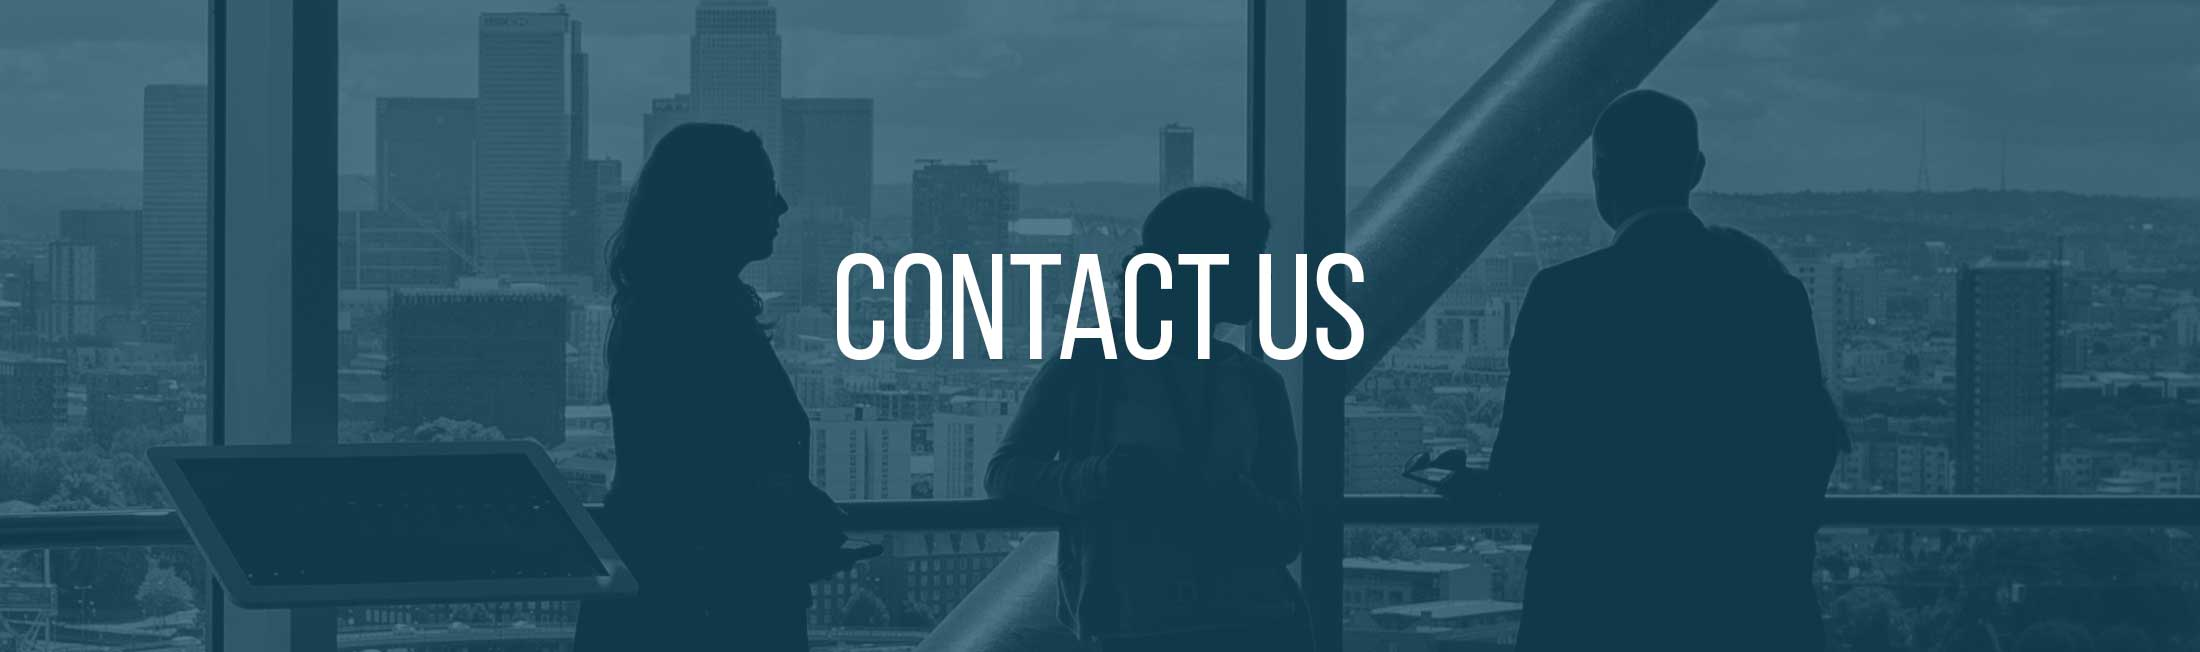 contact us banner - Write for us